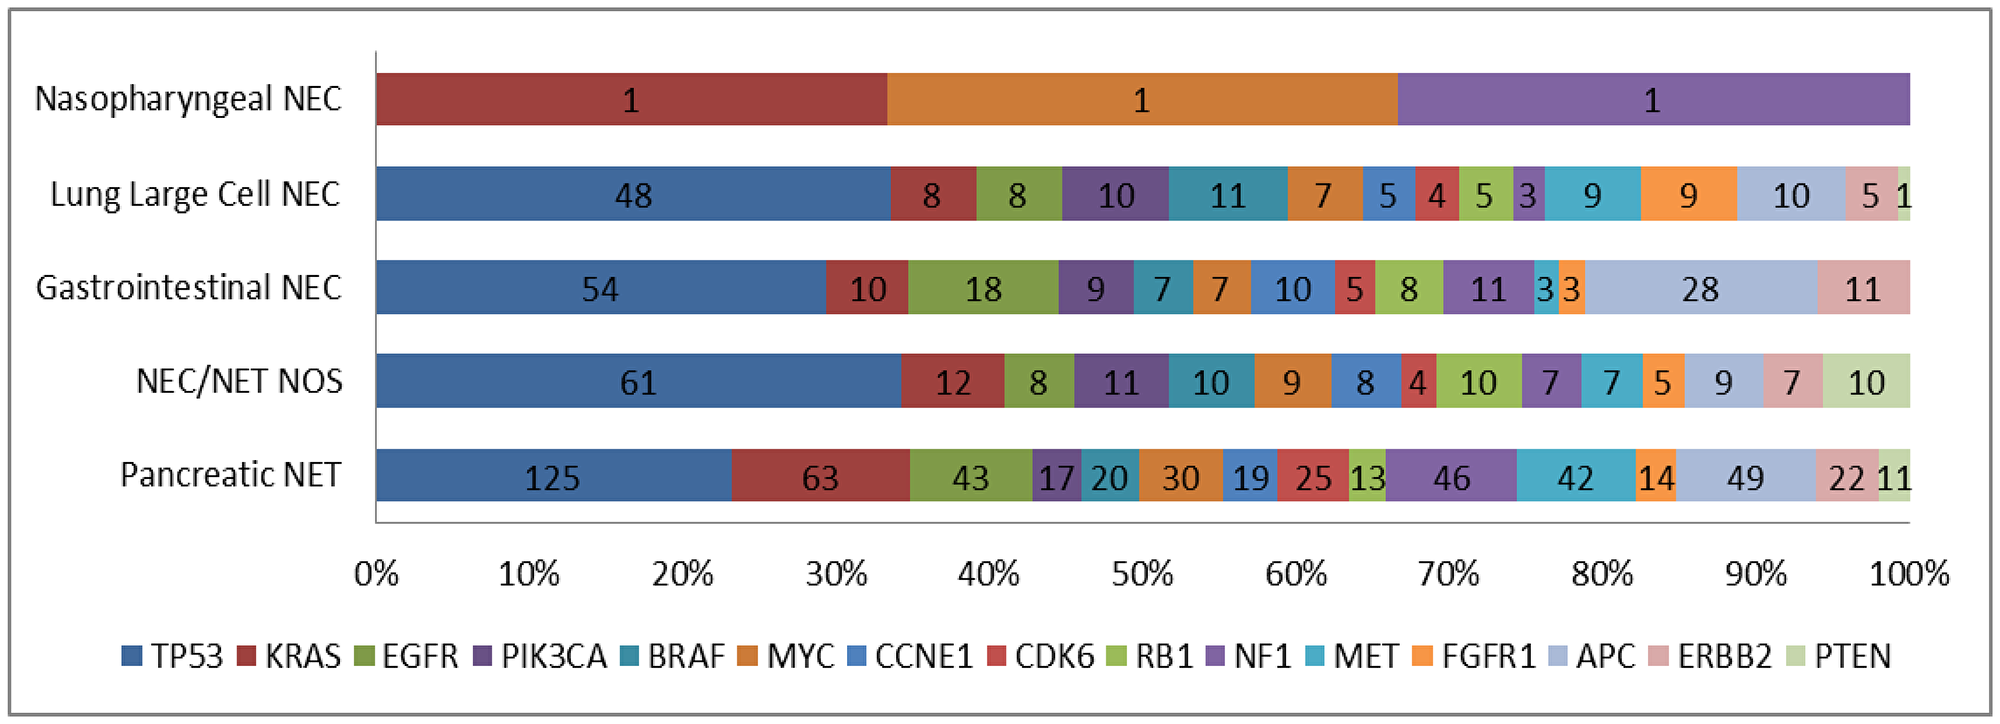 Genomic alterations stratified by tumor type.